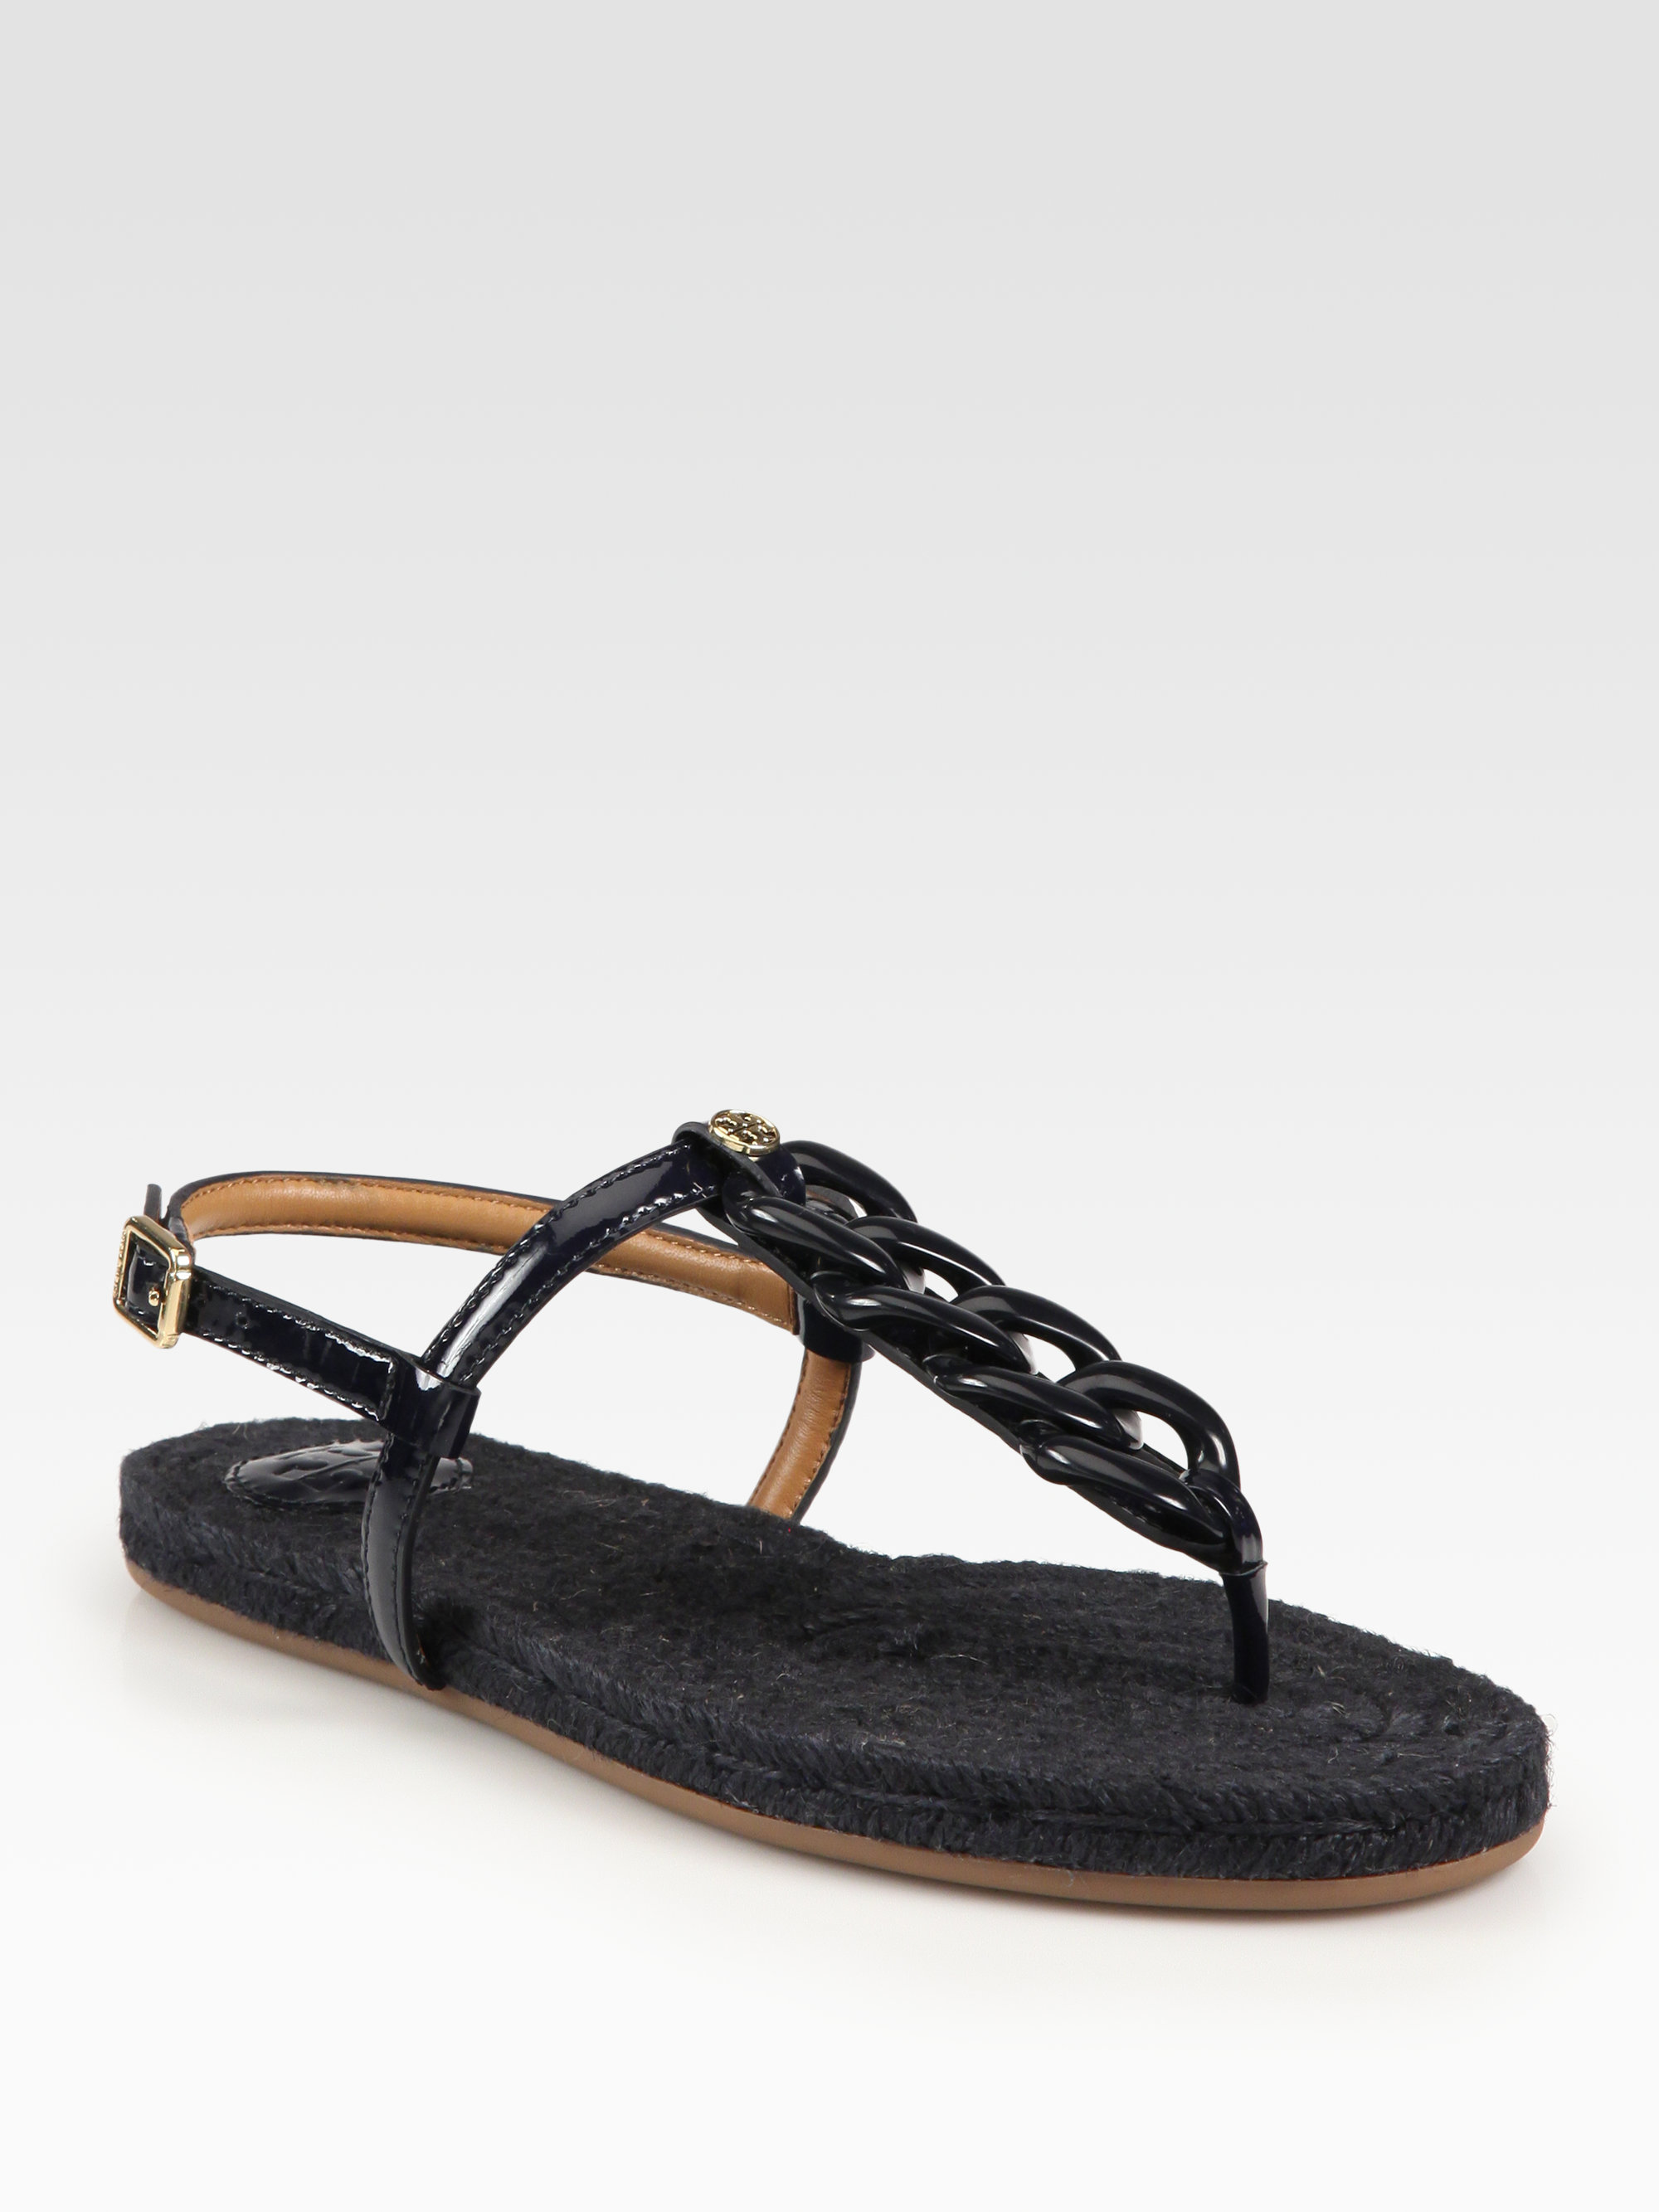 Tory Burch Altha Patent Leather Thong Sandals In Black